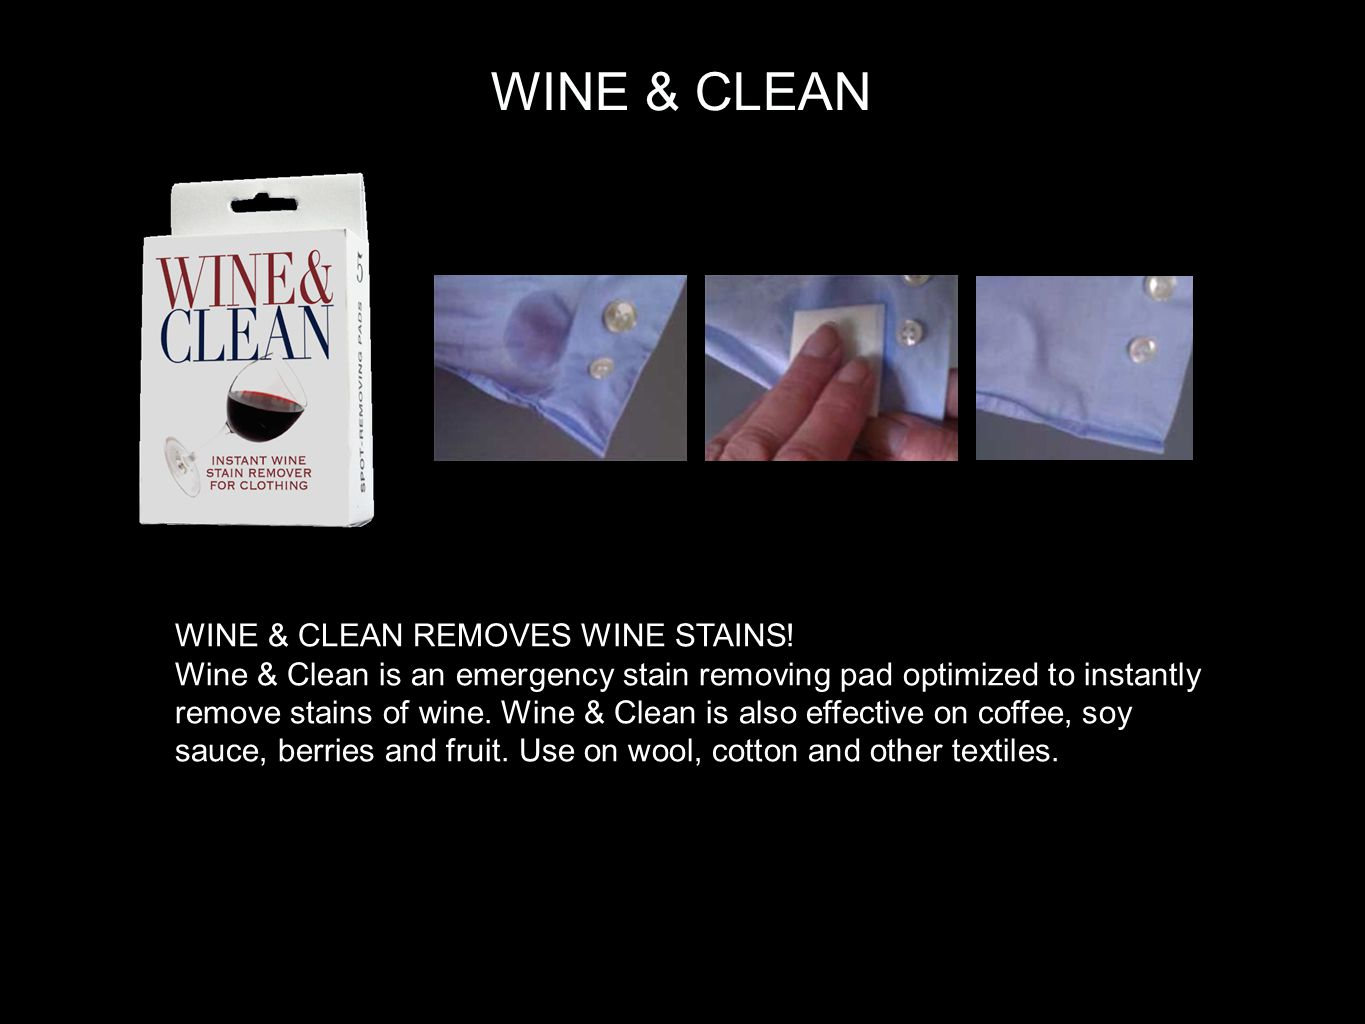 WINE & CLEAN REMOVES WINE STAINS.